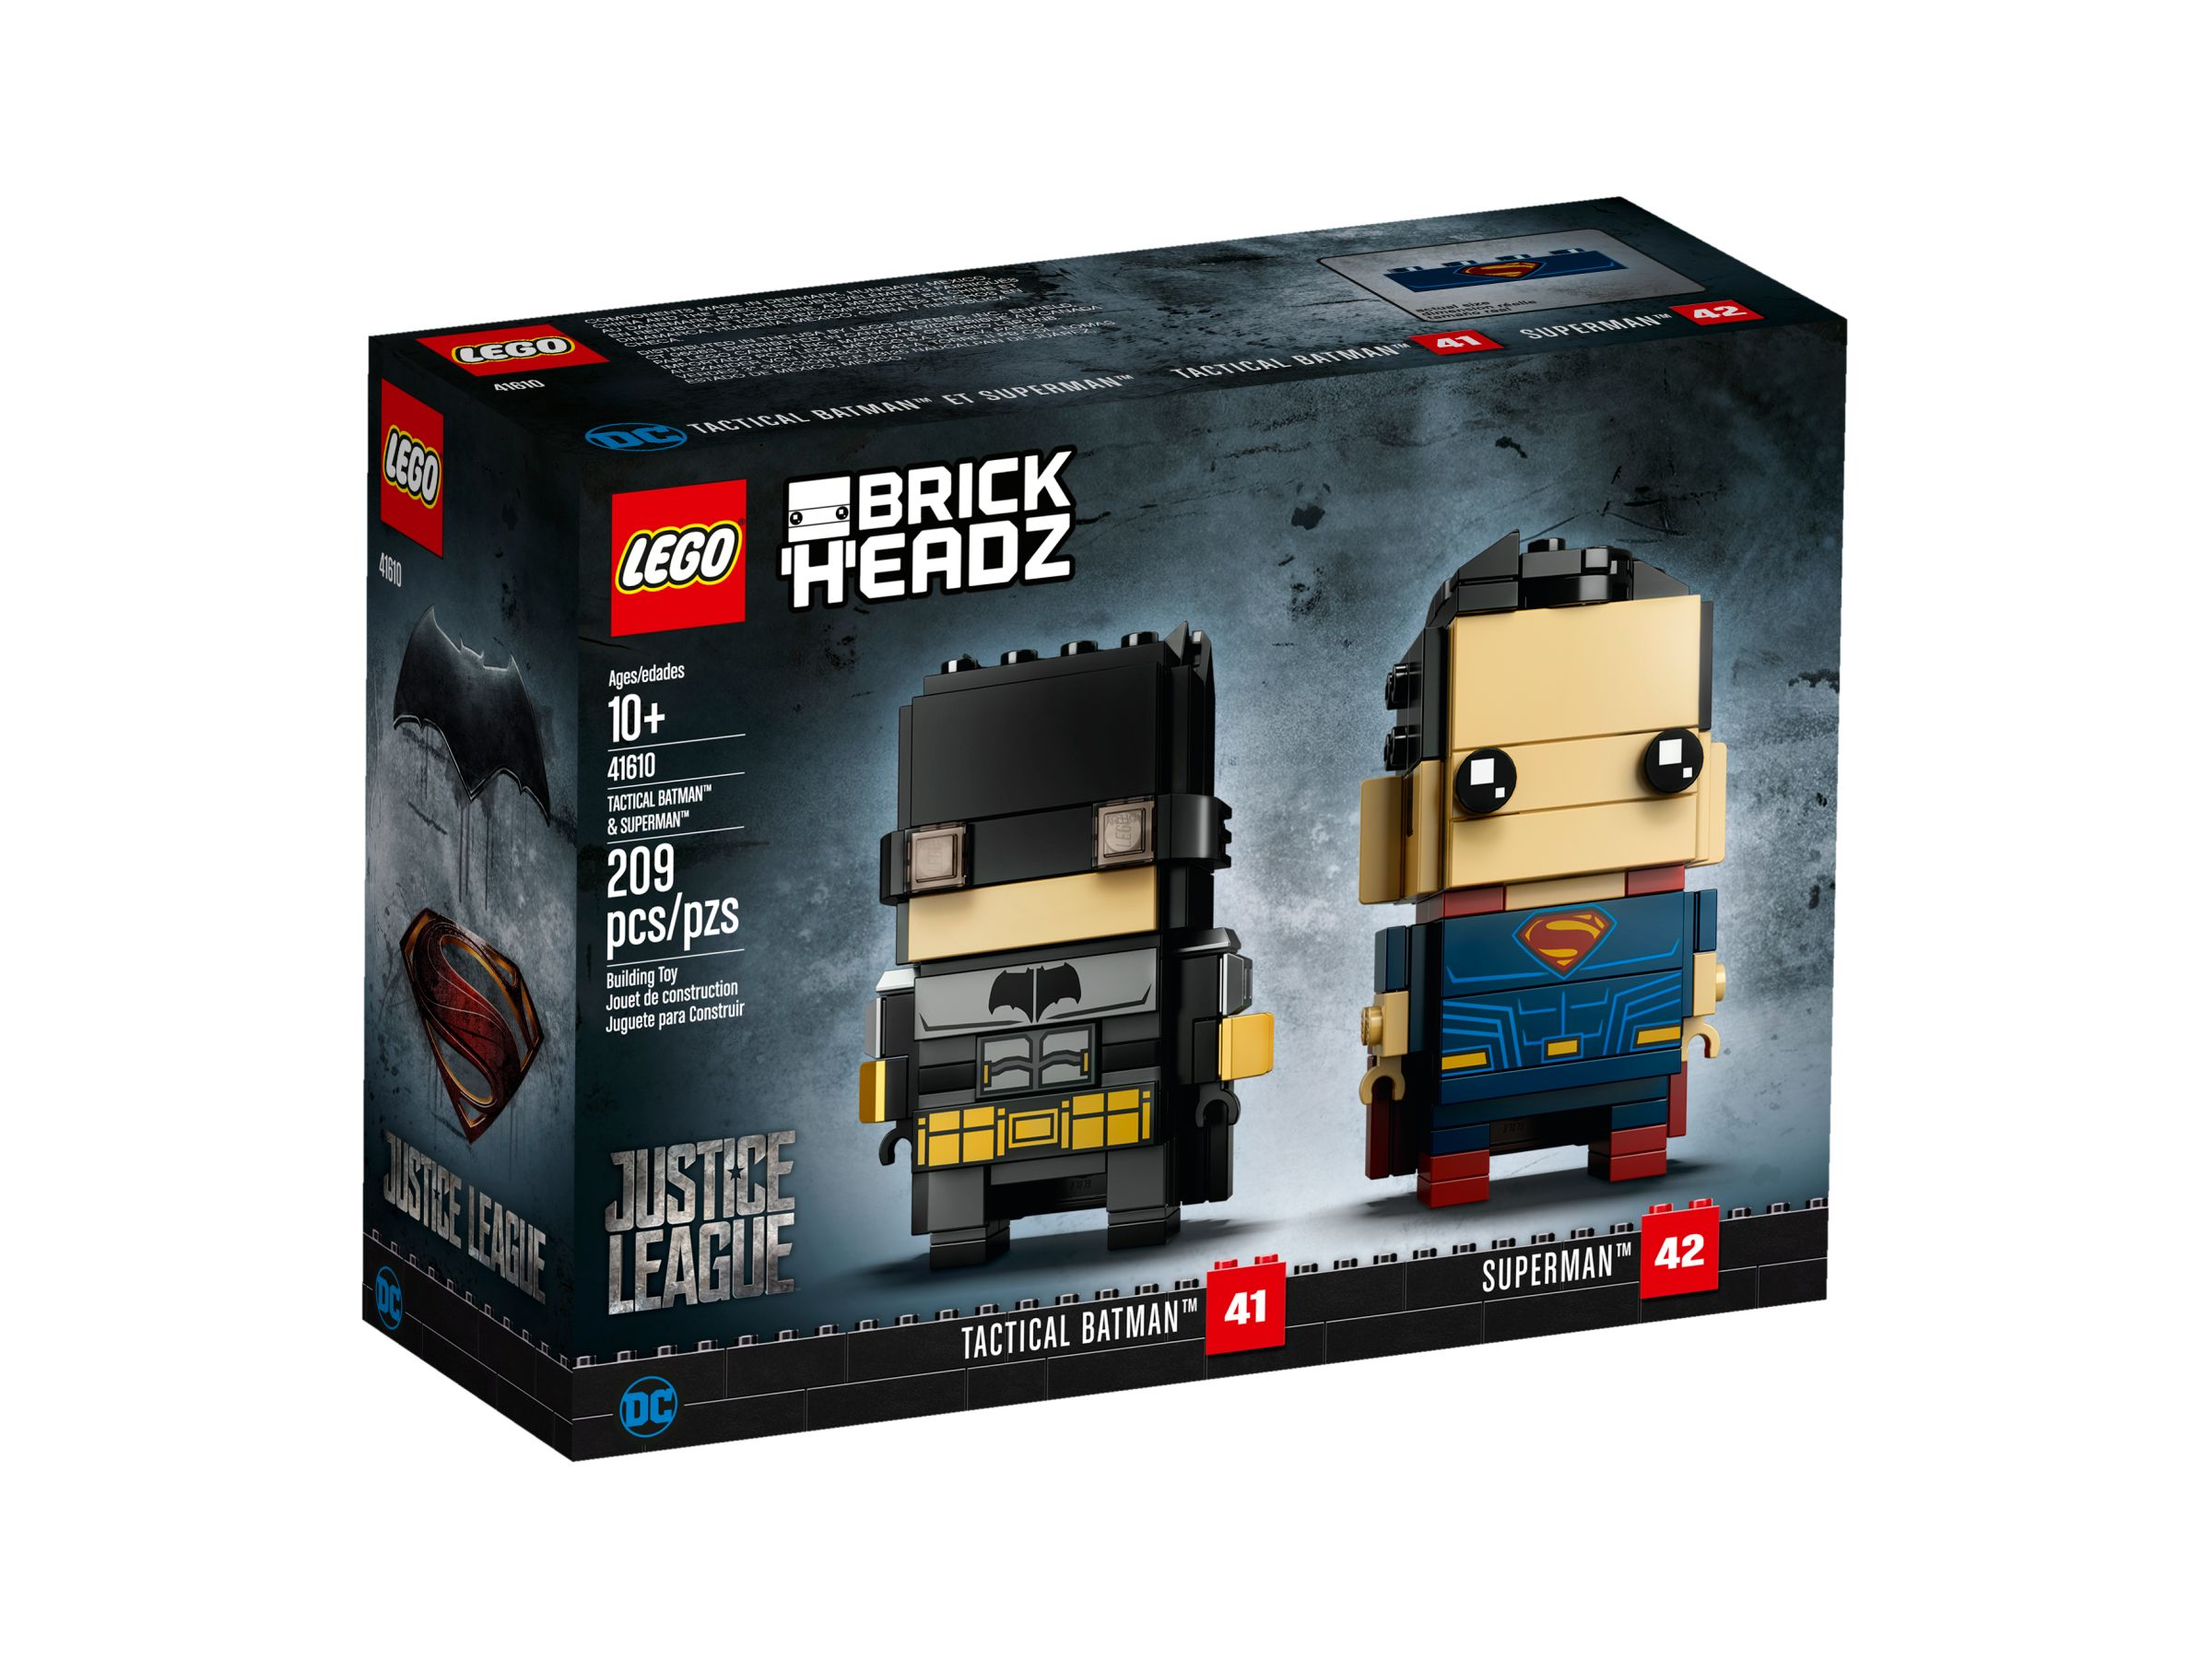 LEGO BrickHeadz 41610 Tactical Batman™ & Superman™ LEGO_41610_alt1.jpg